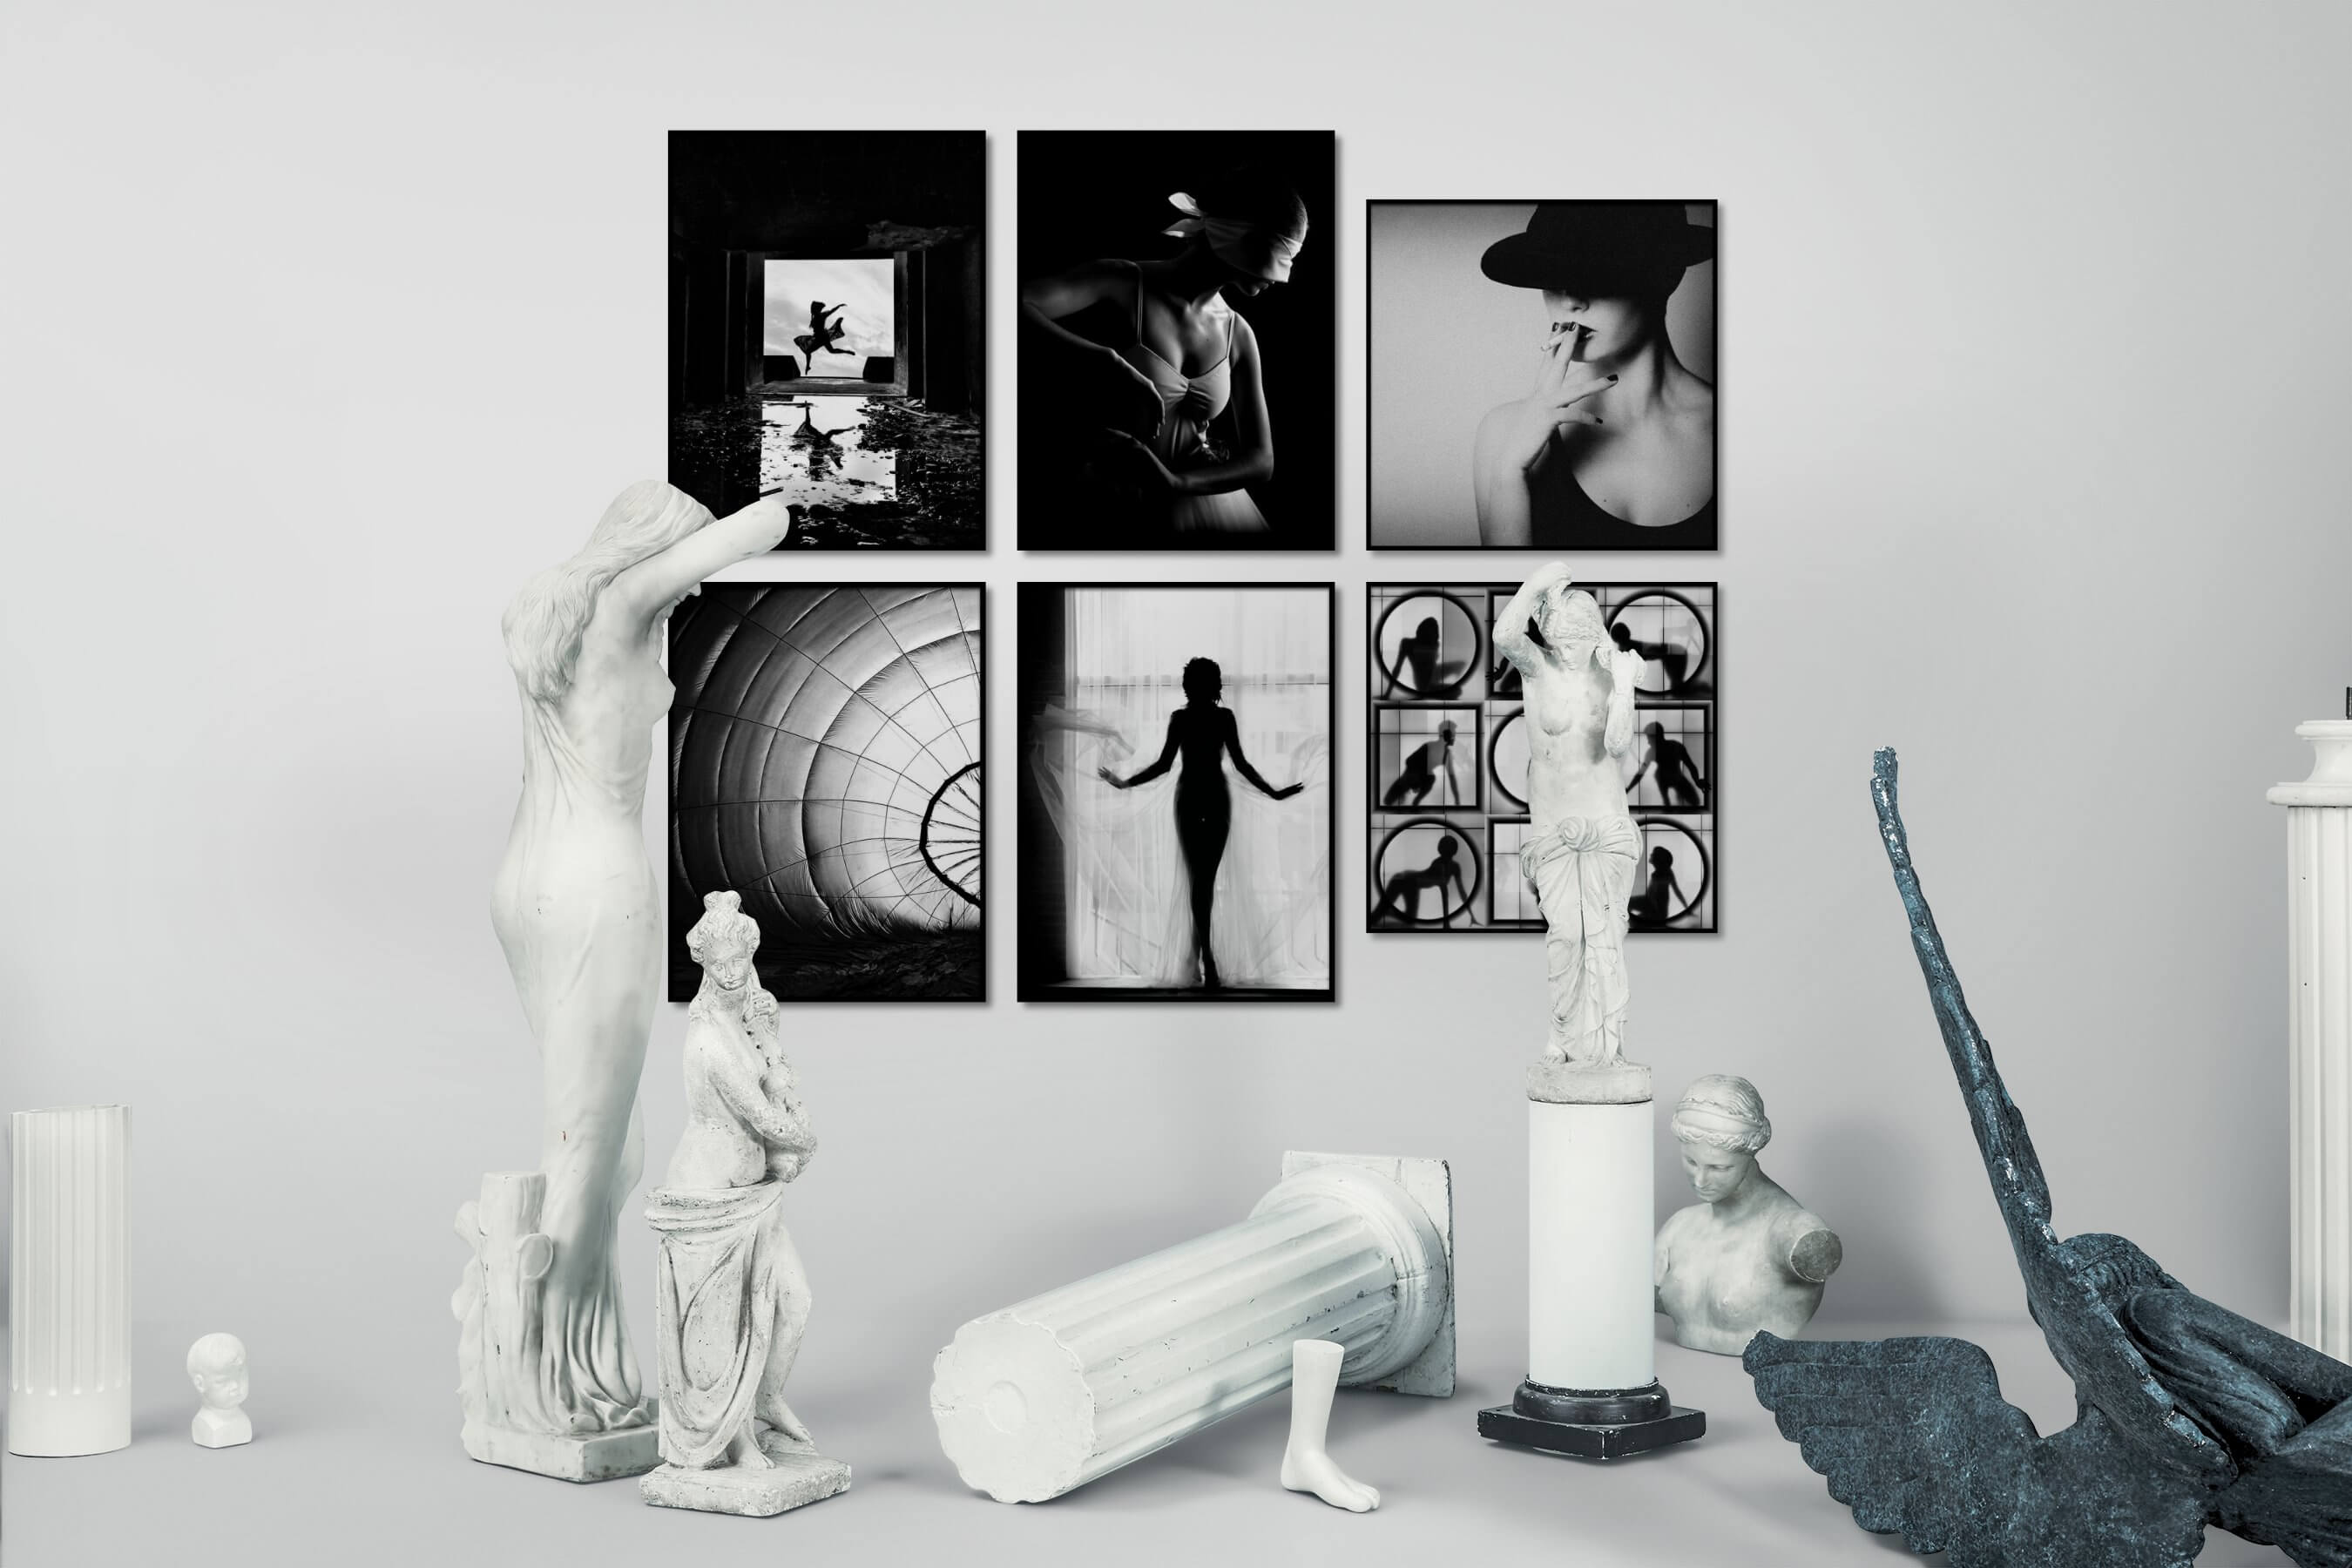 Gallery wall idea with six framed pictures arranged on a wall depicting Fashion & Beauty, Black & White, Dark Tones, Mindfulness, For the Moderate, Artsy, and For the Maximalist